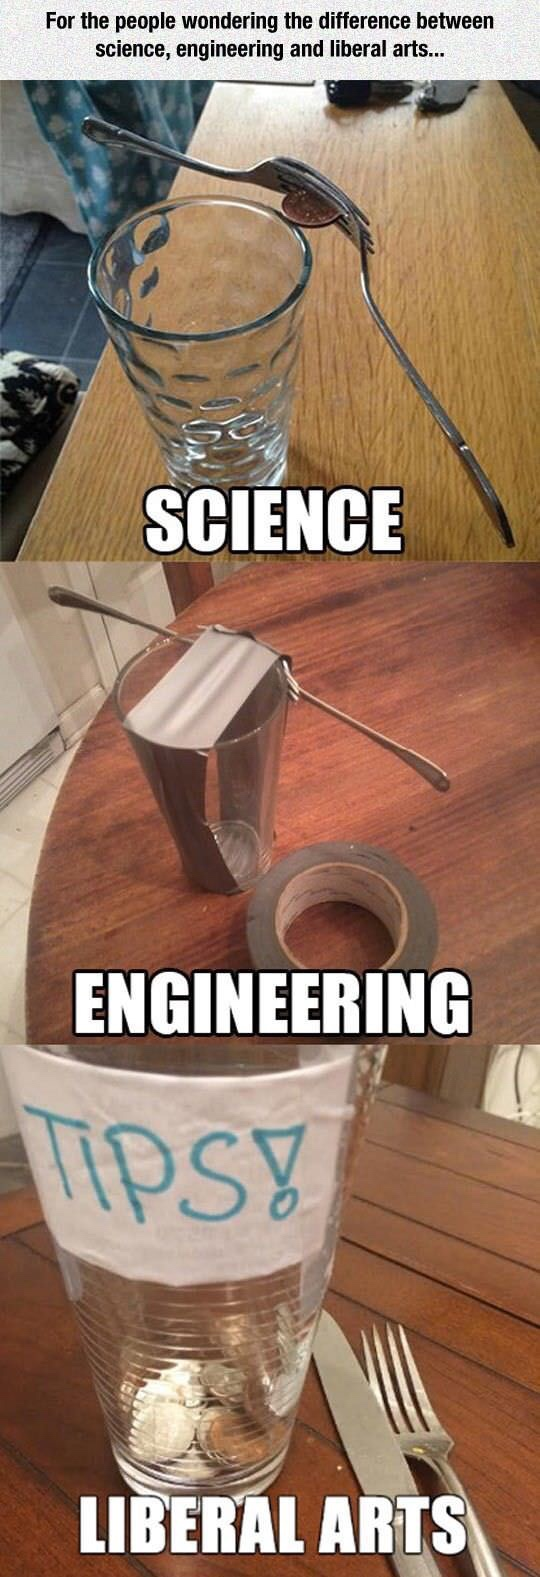 For the people wondering what the difference between science, engineering and liberal arts